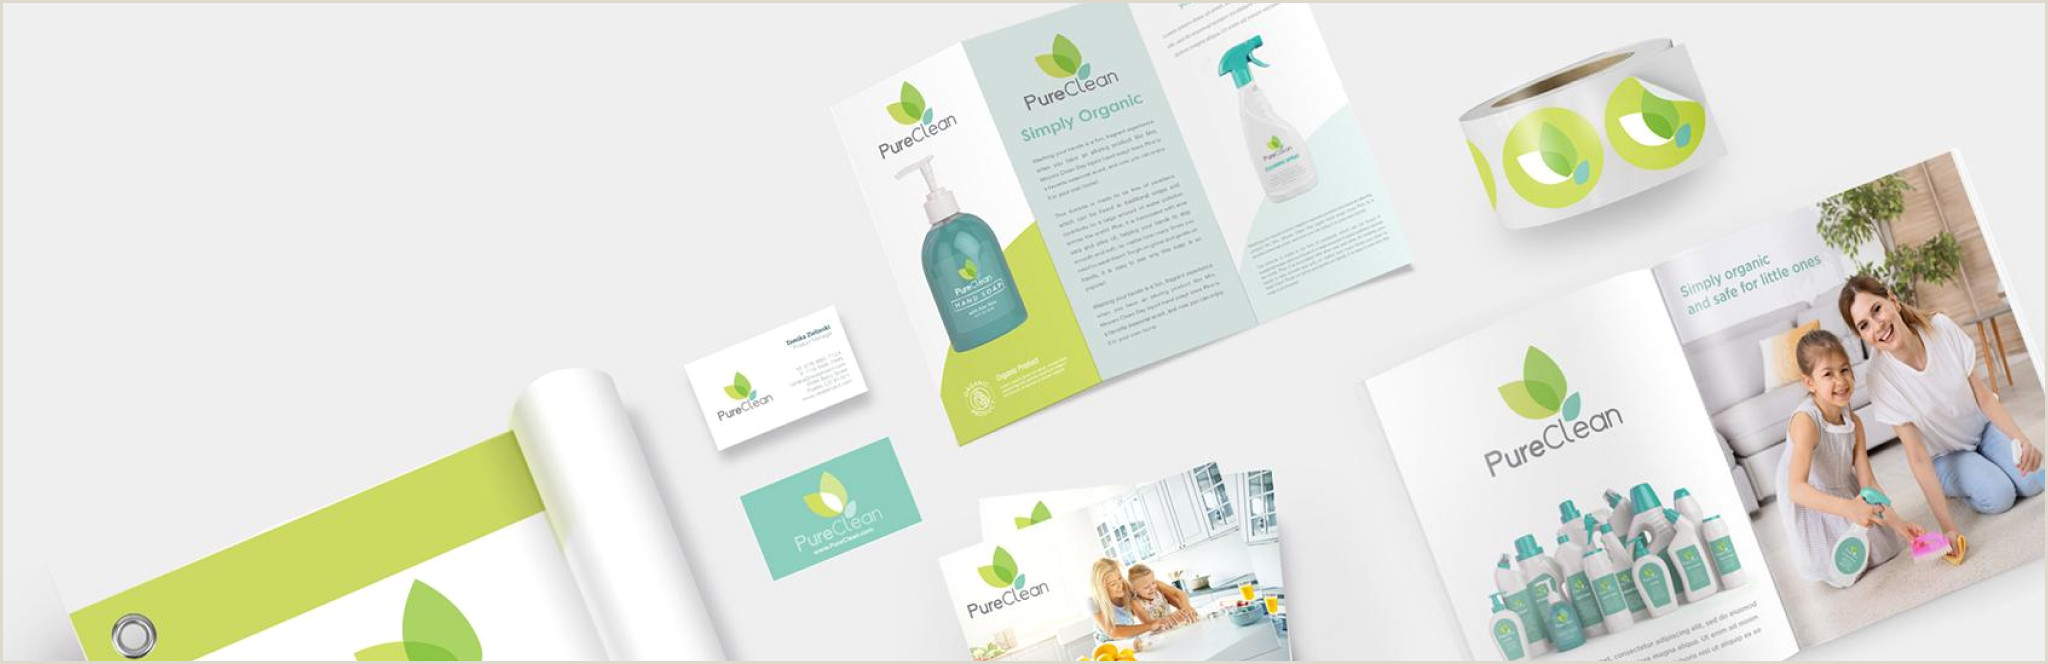 Best Online Business Cards Printplace High Quality Line Printing Services